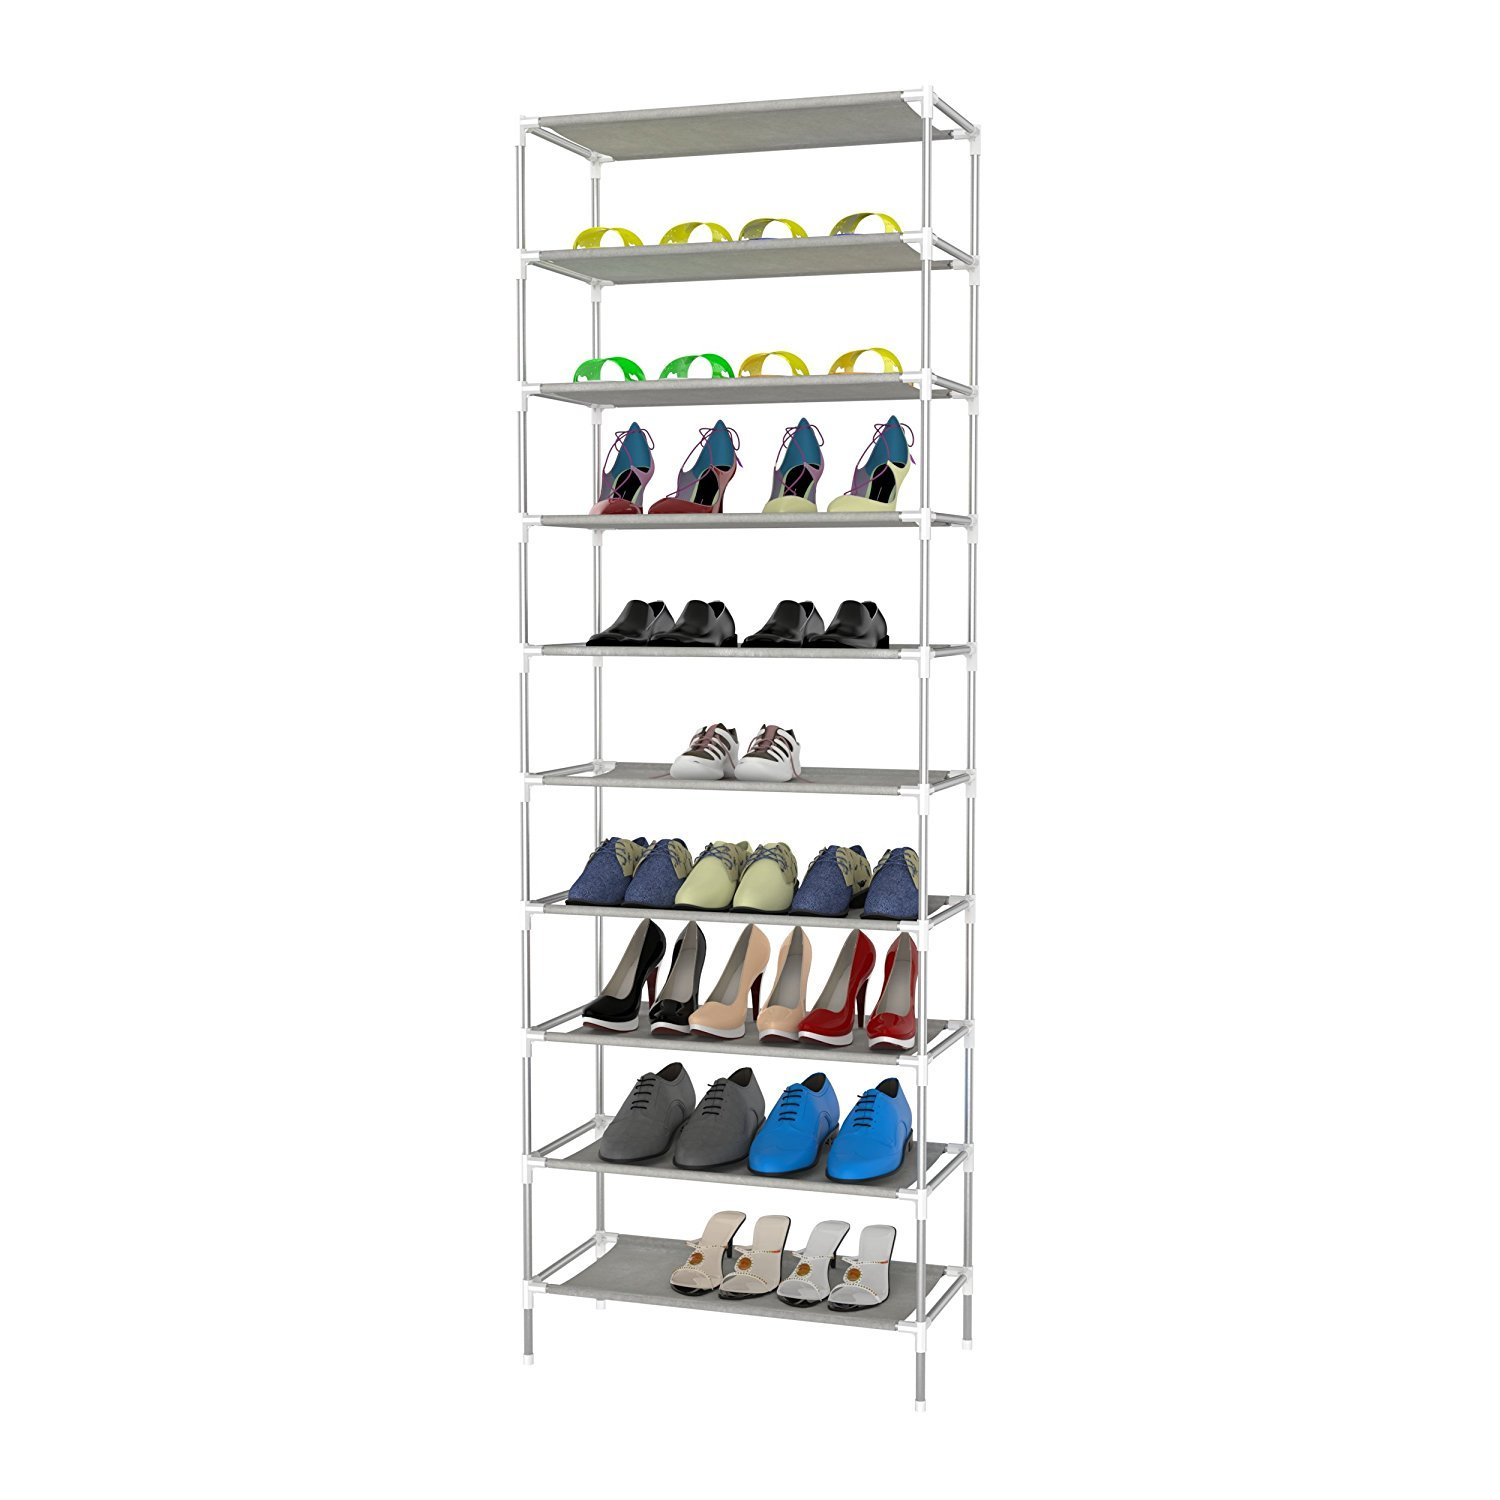 Vividy 50 Pairs Shoe Rack Storage Organzier, 10-Tier Stackable Portable Closet Bench Tower